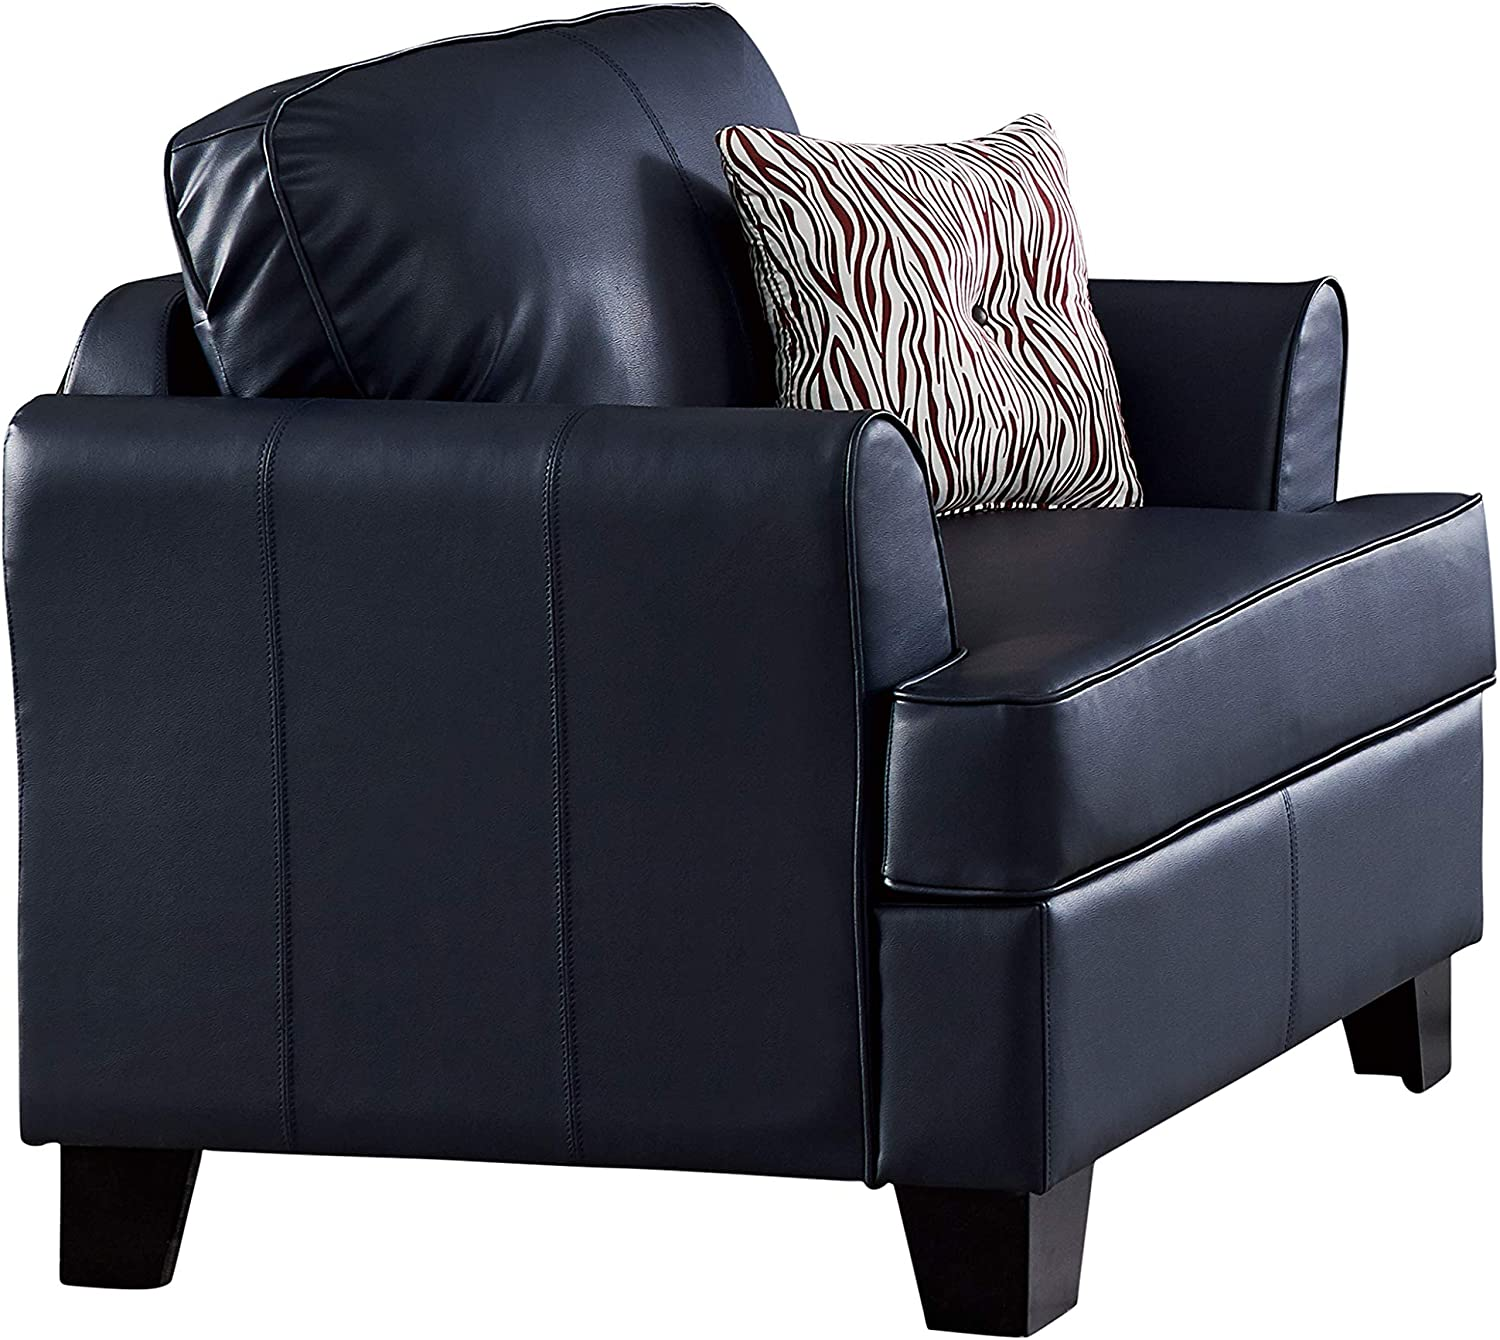 Picture of: Chantal 39 5 Oversized Flared Arm Living Room Chair Couch Upholstered Faux Leather Blue Transitional Pilaster Designs